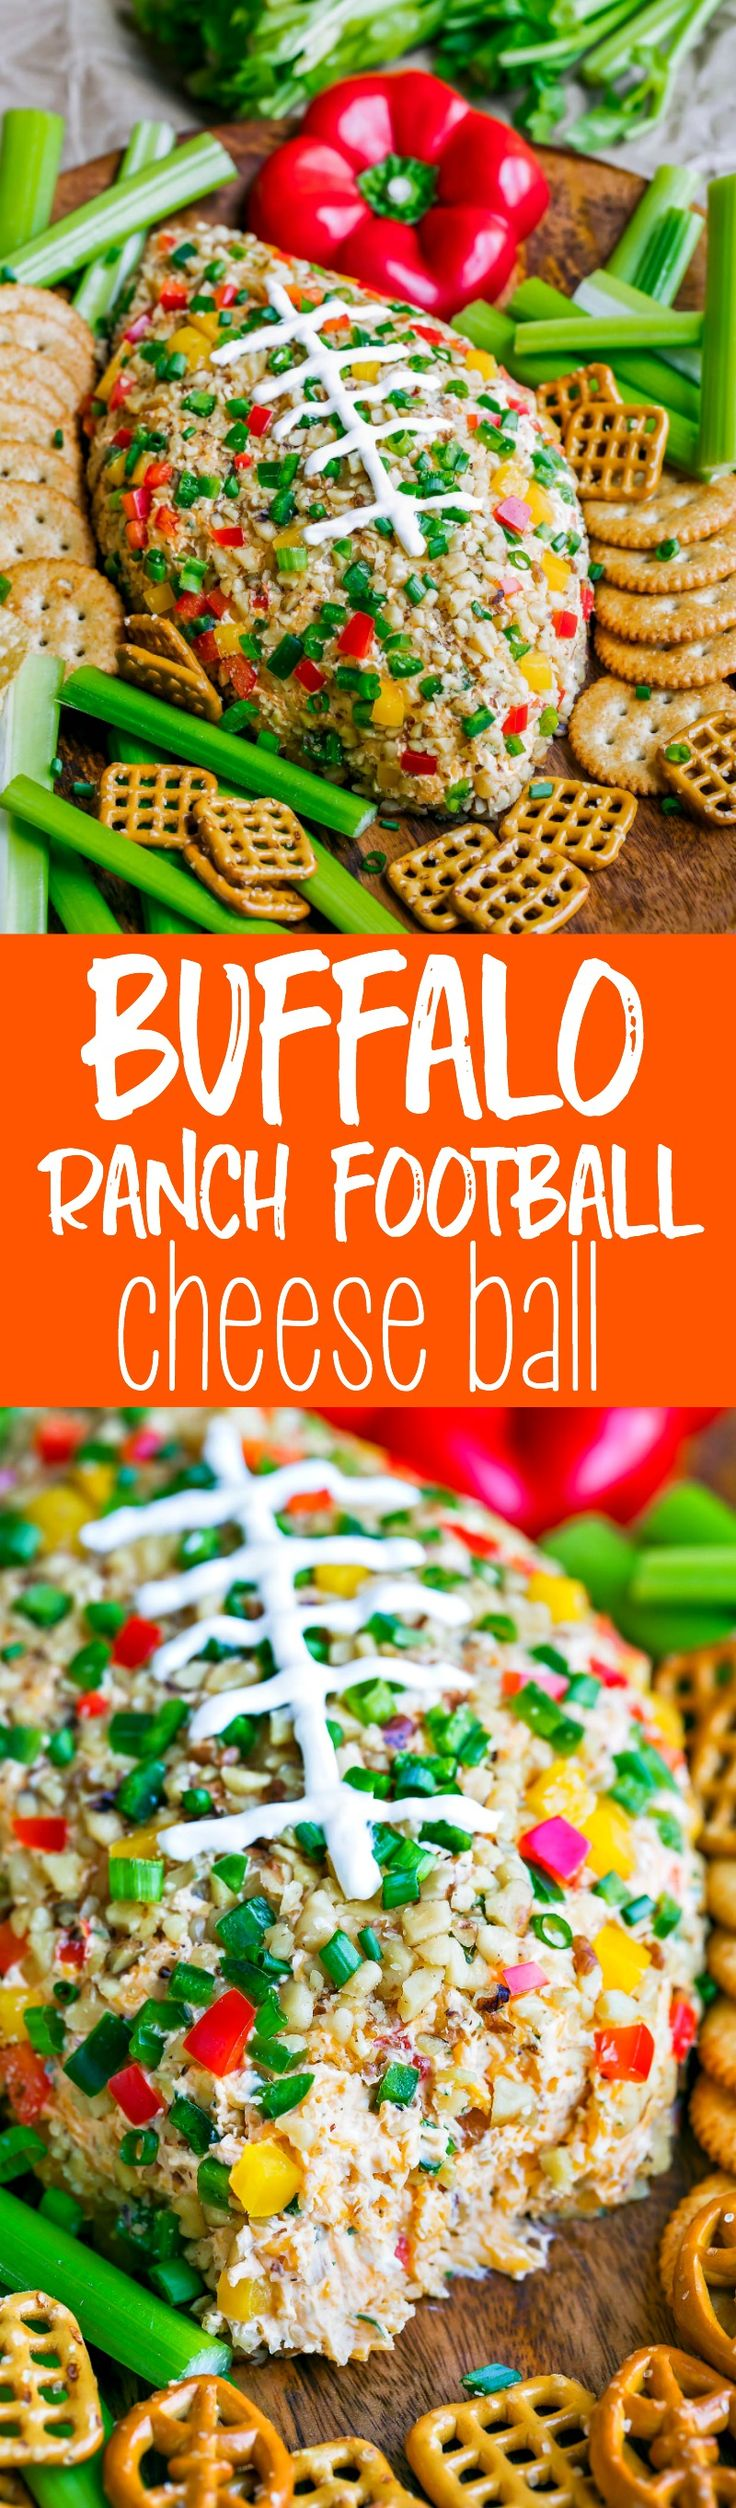 You're guaranteed touchdown status at your next game day party with this Buffalo Ranch Football Cheese Ball! This crazy easy appetizer can be made in advance and is portable and DELICIOUS! Sponsored by Save-A-Lot